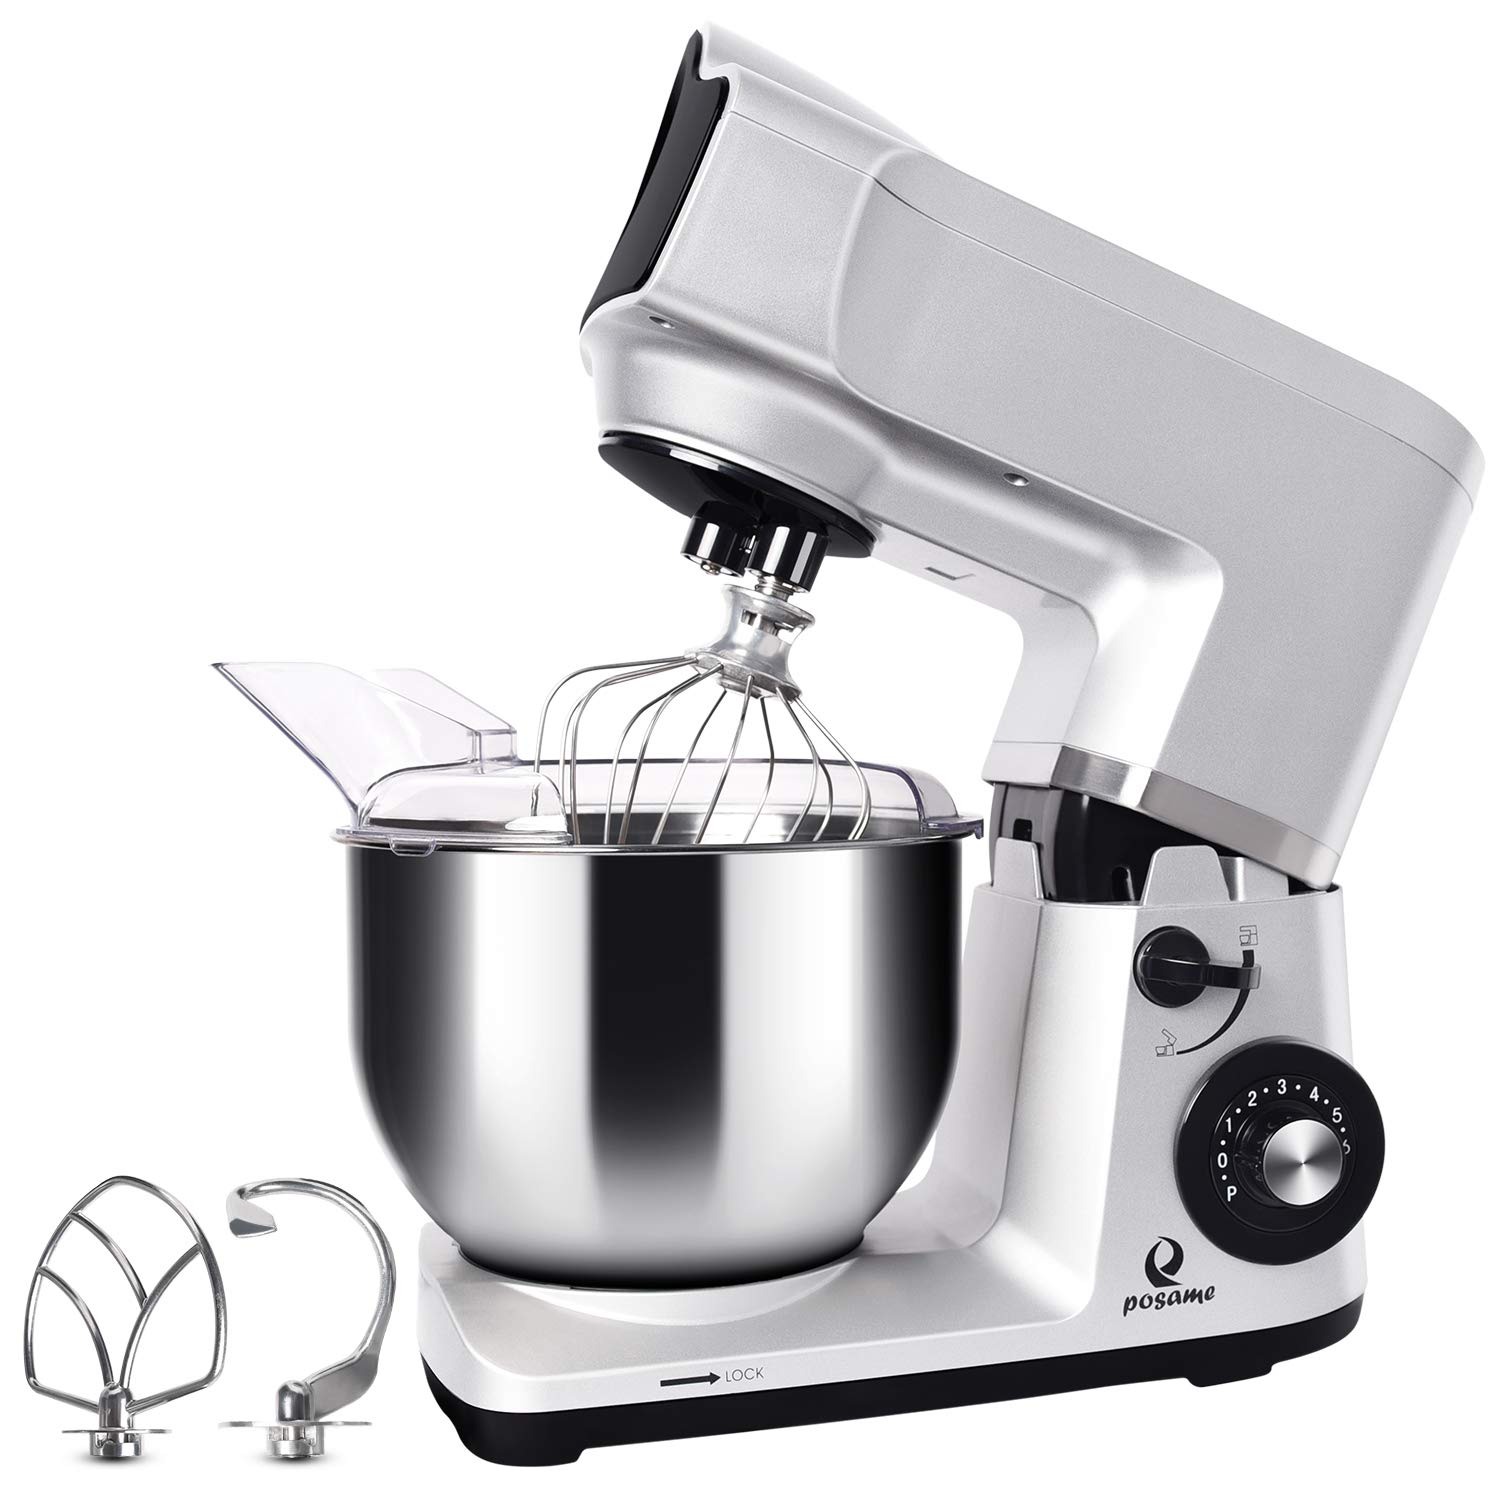 Stand Mixer, POSAME Professional 500W Bake Mixer Kitchen Electric Food Mixer with 5.0-Quart Stainless Steel Bowl, 6-Speed Cookie Dough Mixer with Dough Hook, Whisk, Beater